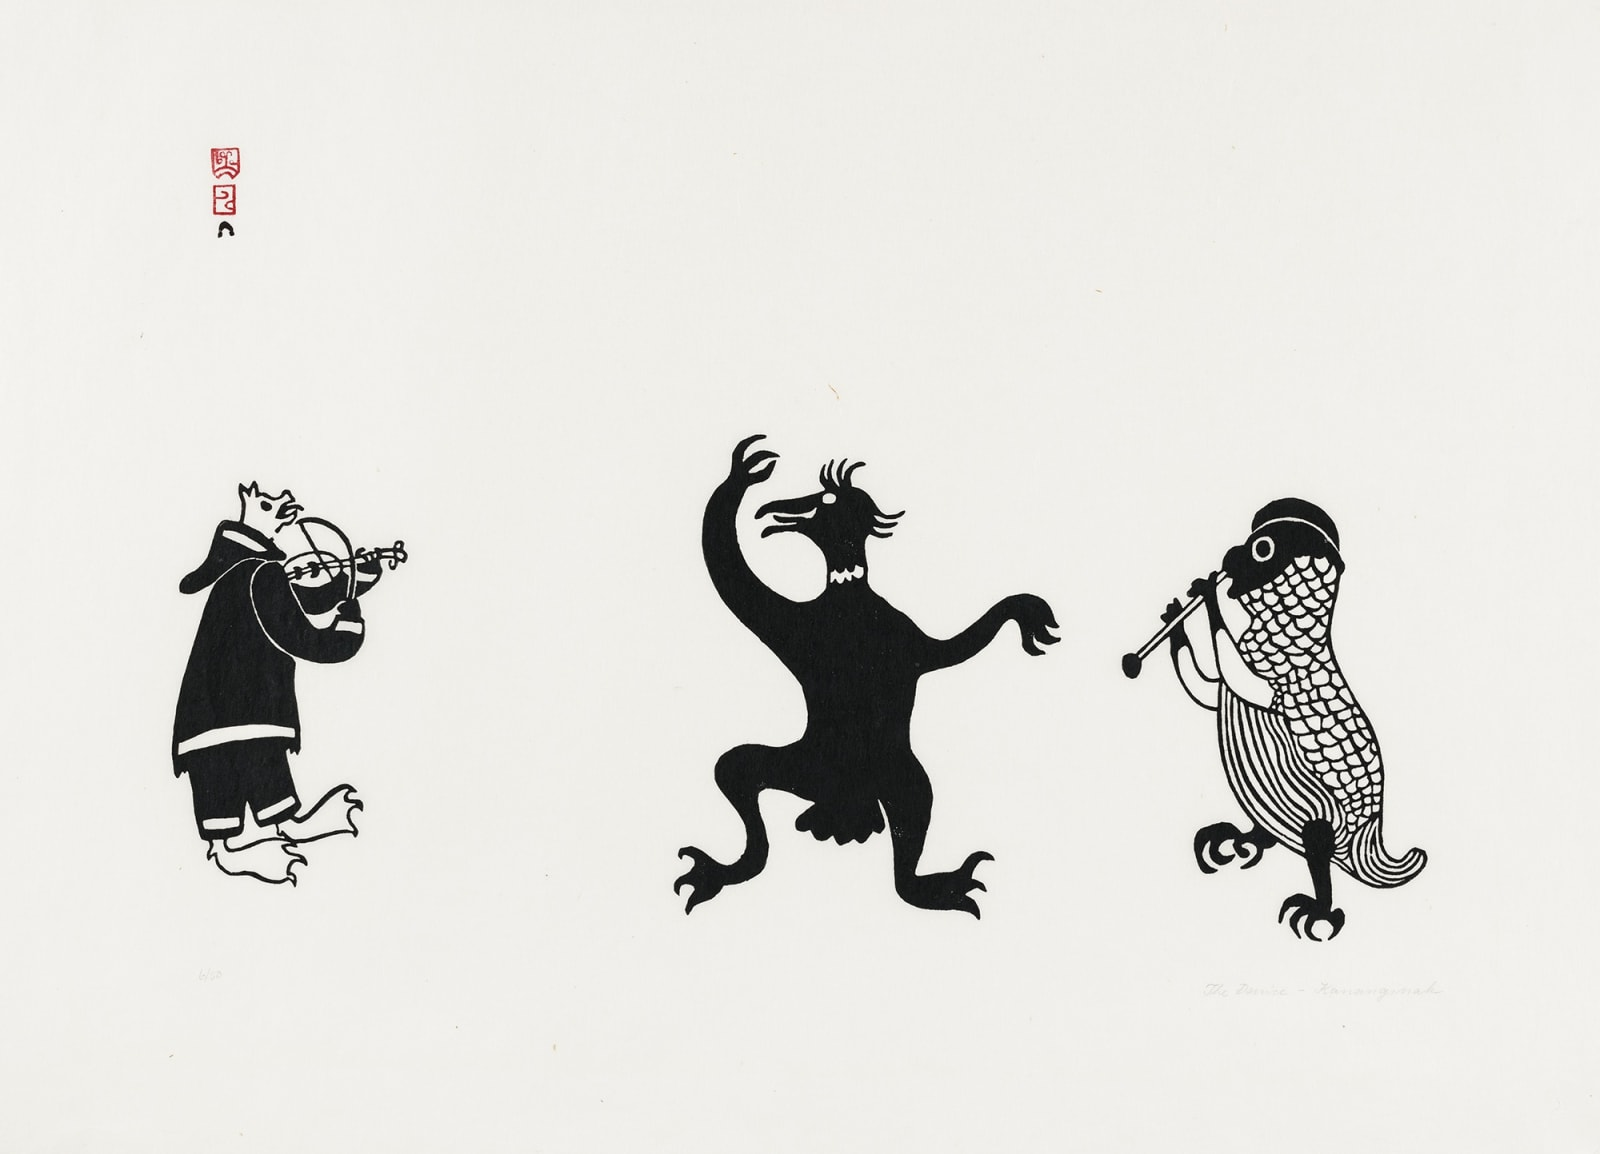 Lot 105 KANANGINAK POOTOOGOOK, R.C.A. (1935-2010) m., KINNGAIT (CAPE DORSET) The Dance (The Fiddle Player), c. 1960-61 (commissioned print, possibly for Imperial Oil) stonecut, 23.5 x 30 in (59.7 x 76.2 cm) Estimate: $900— $1,200